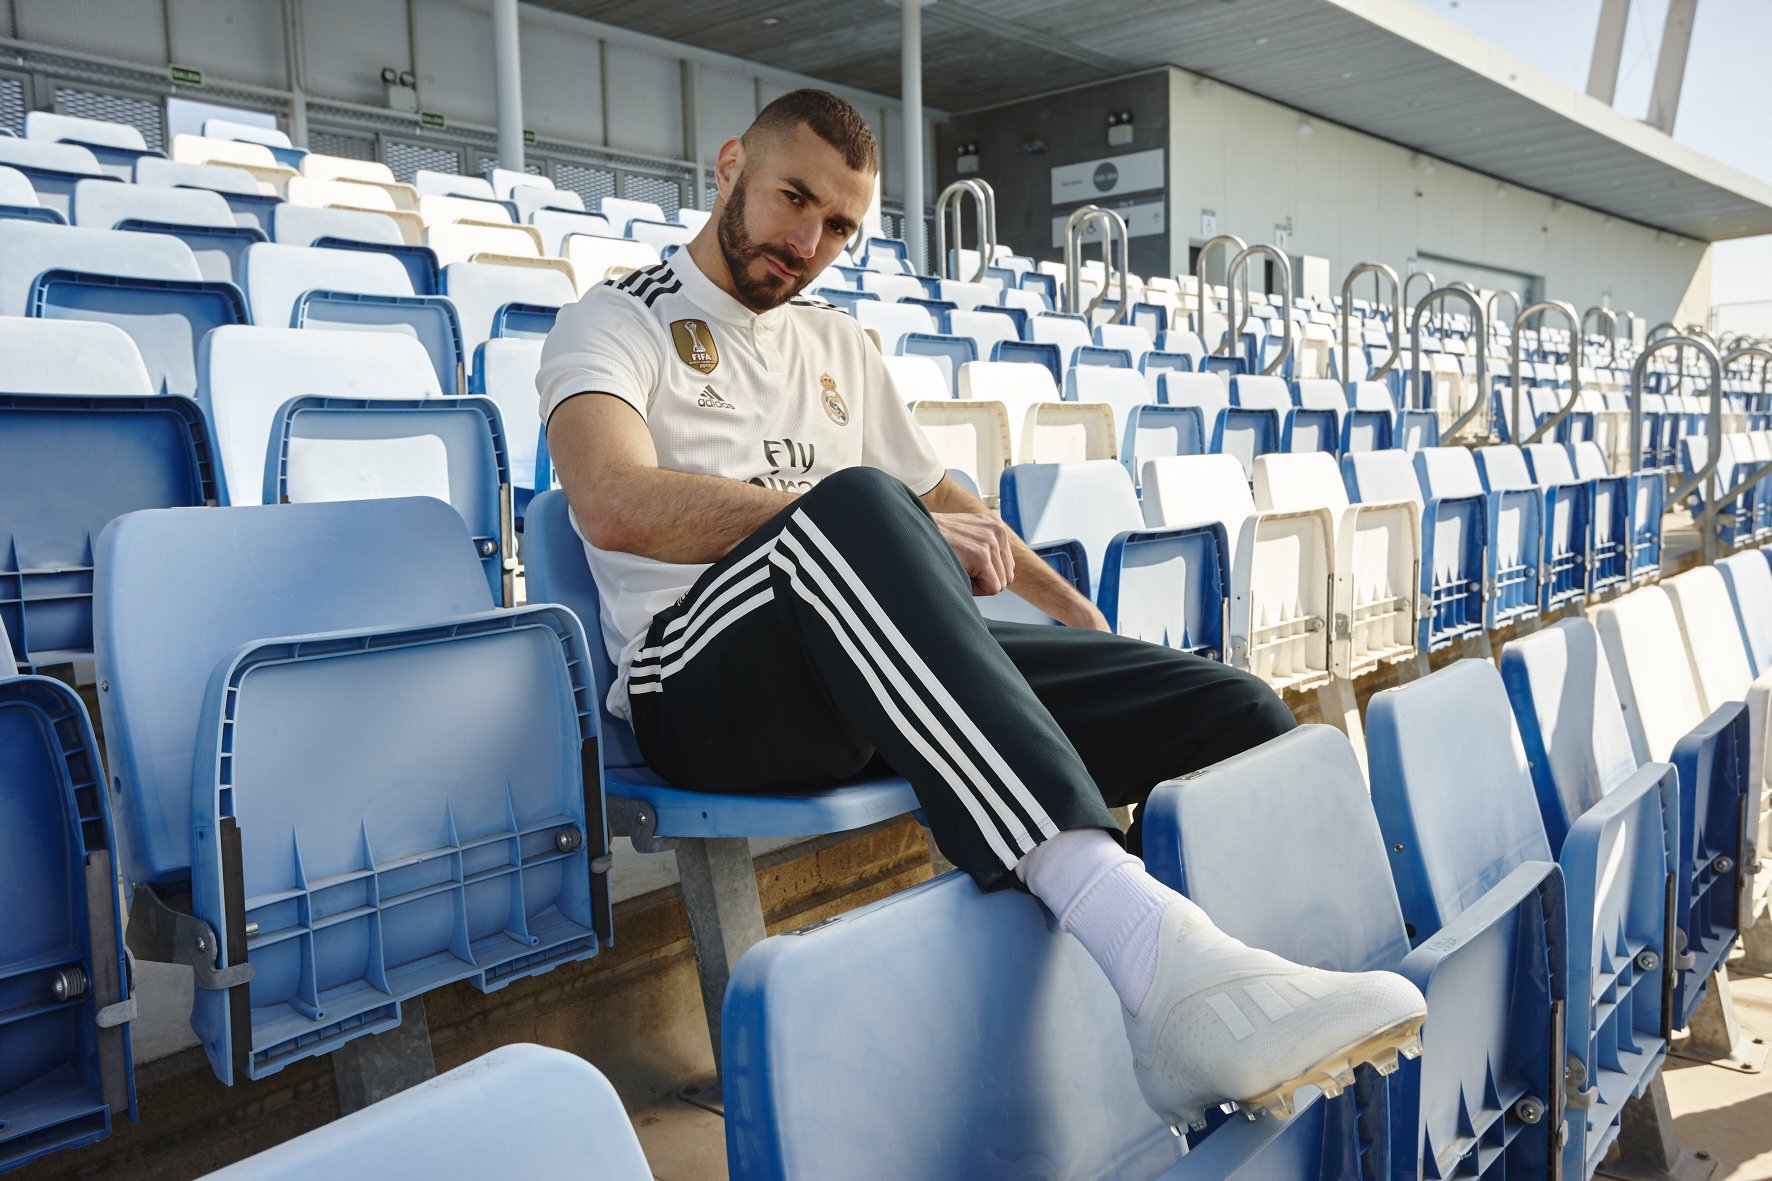 Nueve. ⚪ @Benzema | #X18 | #HereToCreate https://t.co/PX84kHCYea